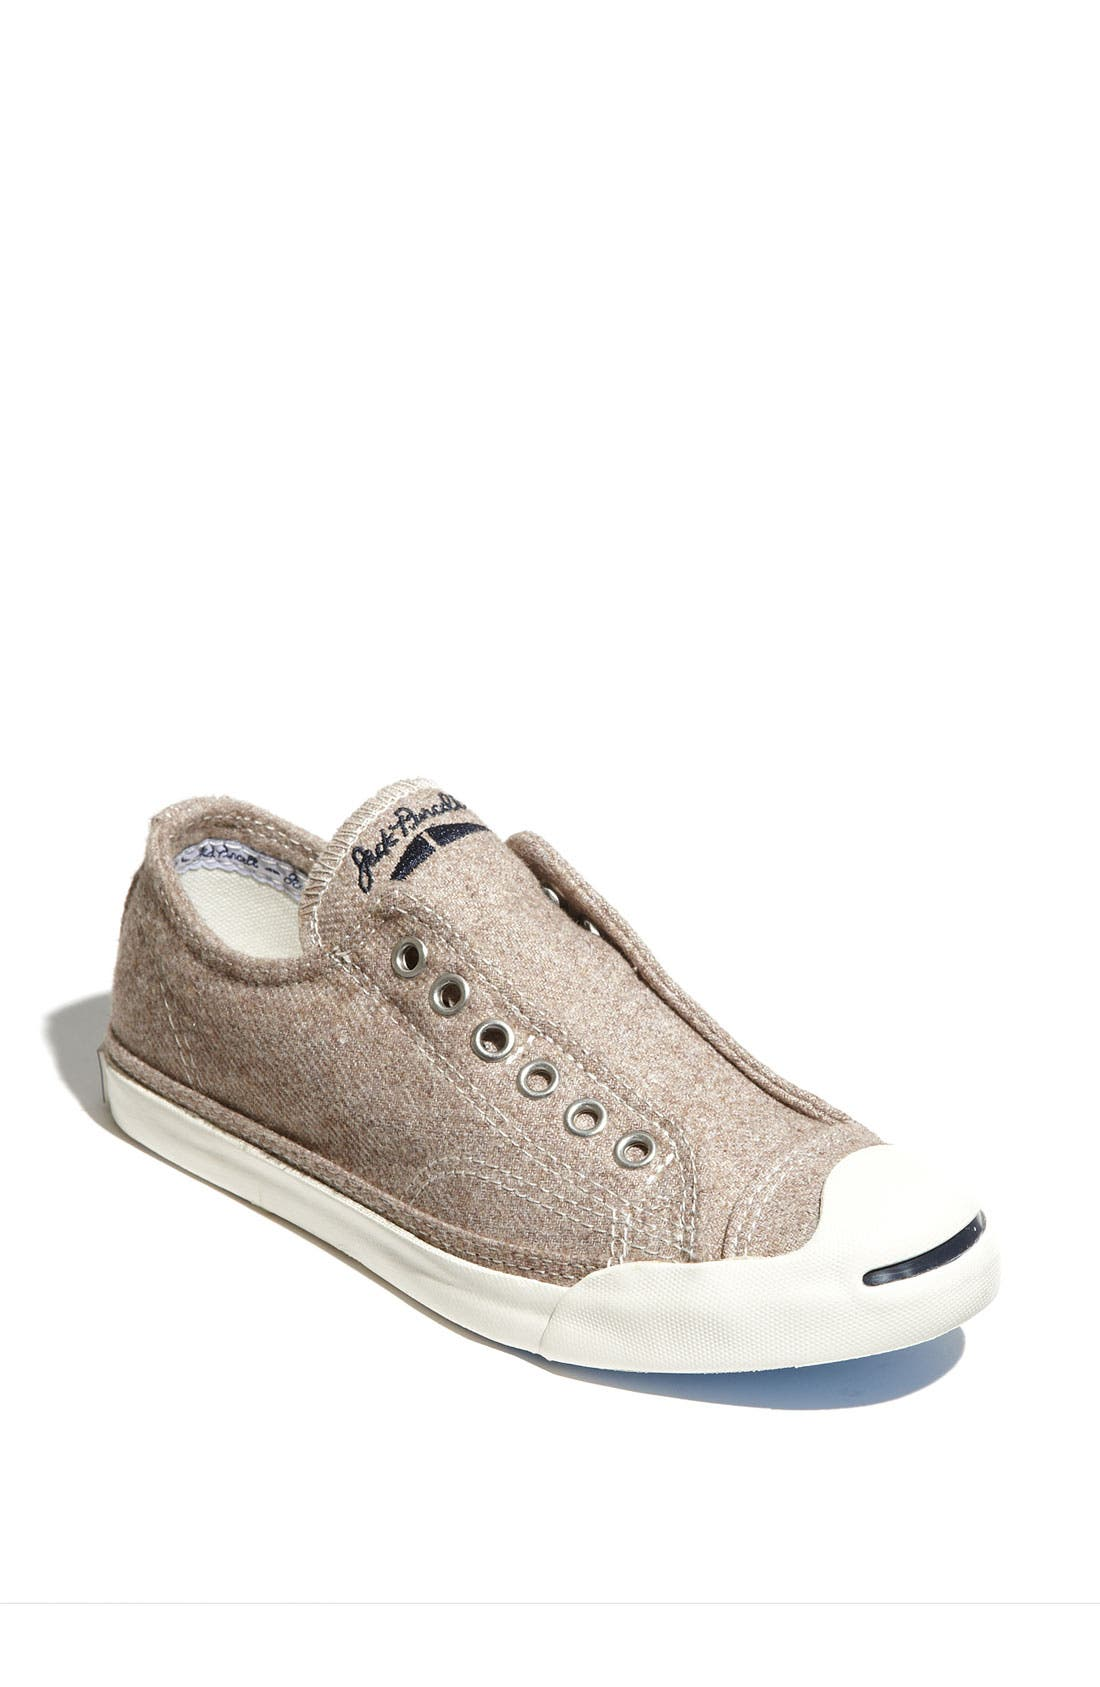 Alternate Image 1 Selected - Converse 'Jack Purcell' Slip-On Sneaker